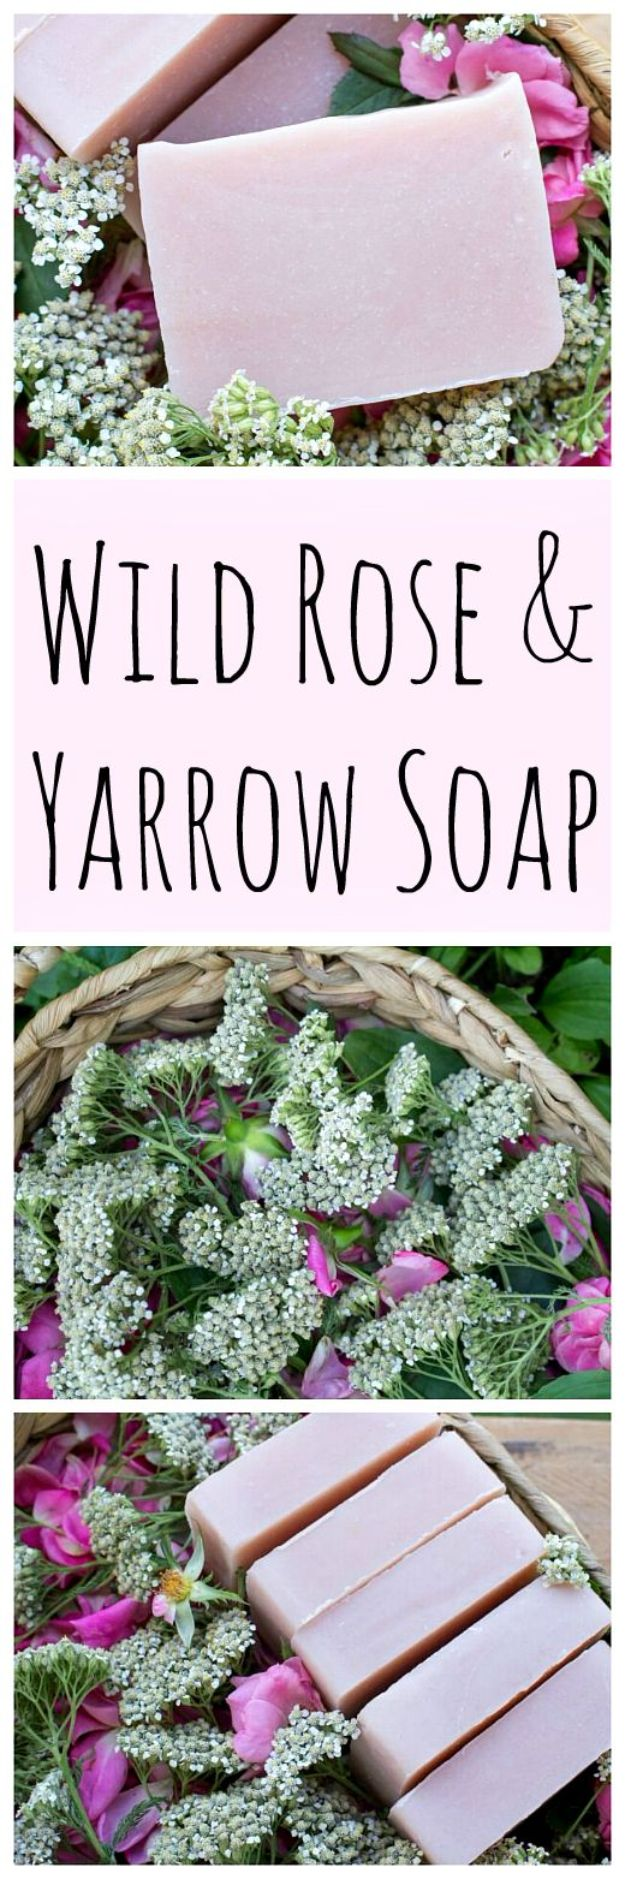 DIY Soap Recipes - Wild Rose And Yarrow Soap - Melt and Pour, Homemade Recipe Without Lye - Natural Soap crafts for Kids - Shea Butter, Essential Oils, Easy Ides With 3 Ingredients - Pretty and Creative Soap Tutorials With Step by Step Instructions for Handmade Soap Making - Cool Stuff To Make and Sell On Etsy http://diyjoy.com/diy-soap-recipes